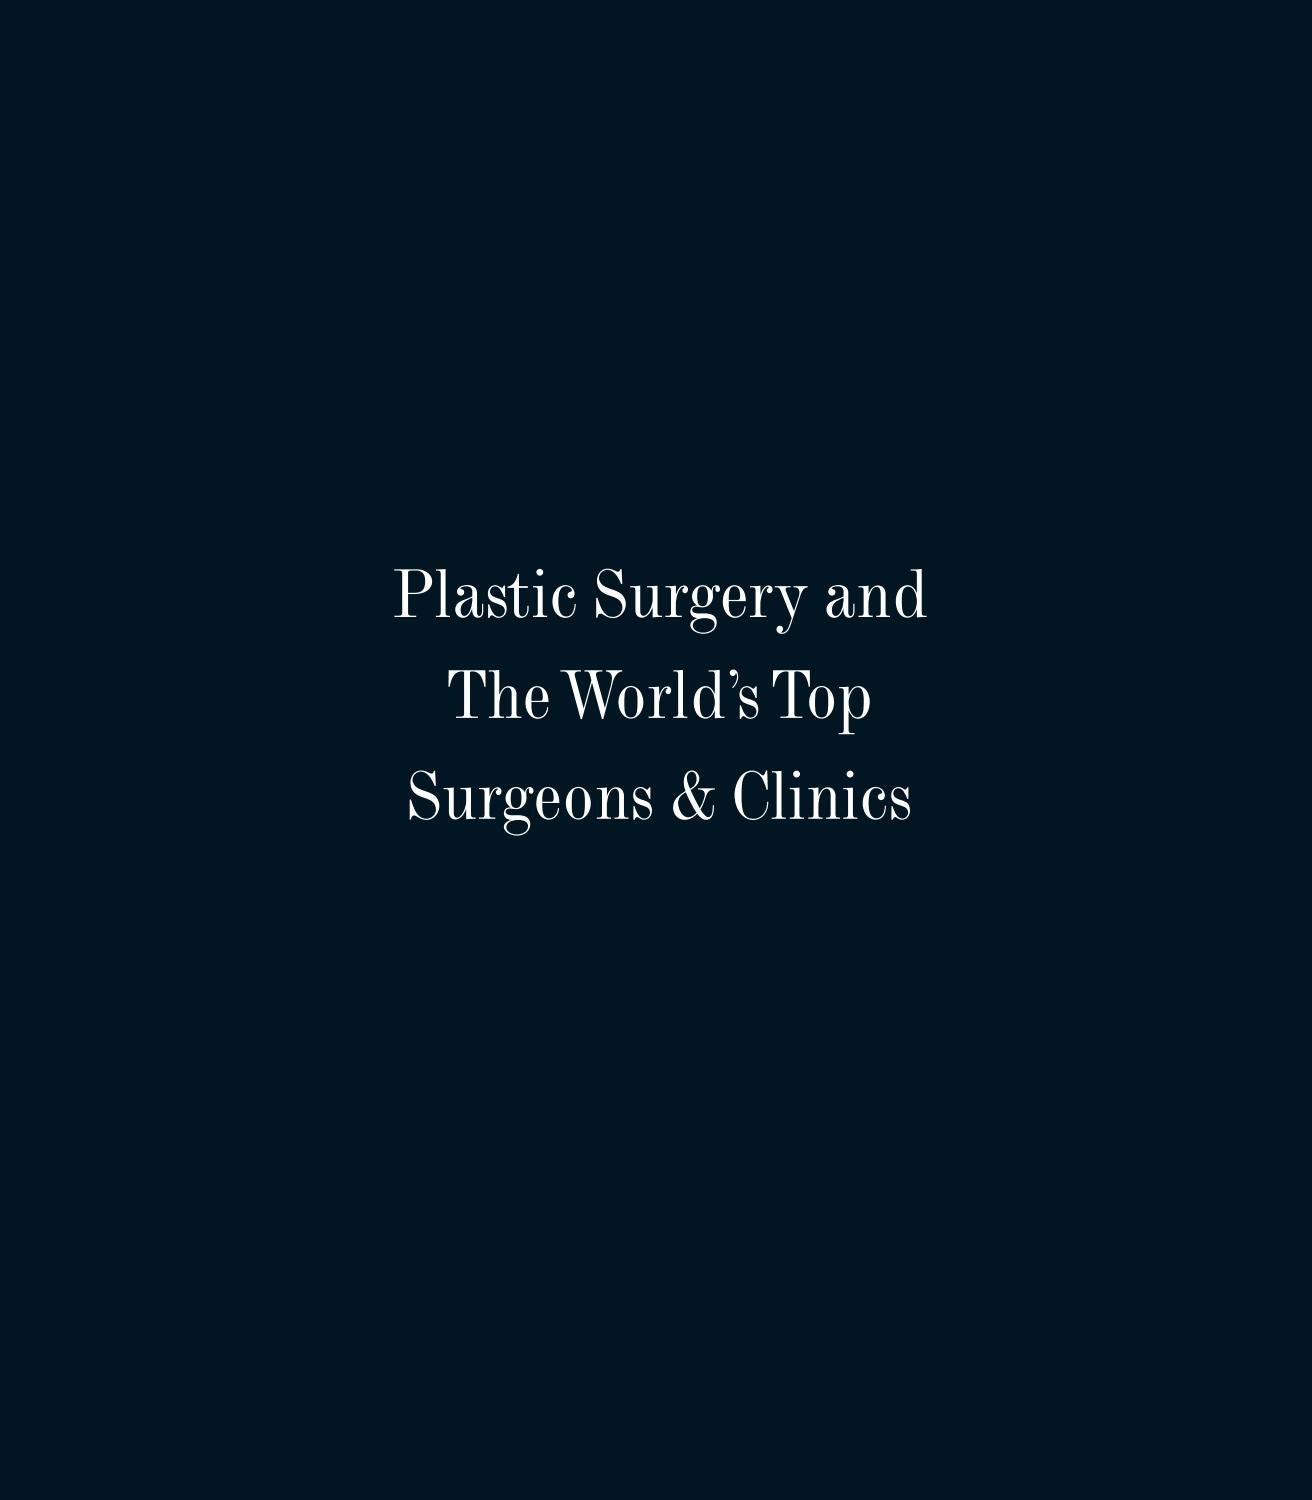 Plastic Surgery and the World's Top Surgeon and Clinics by